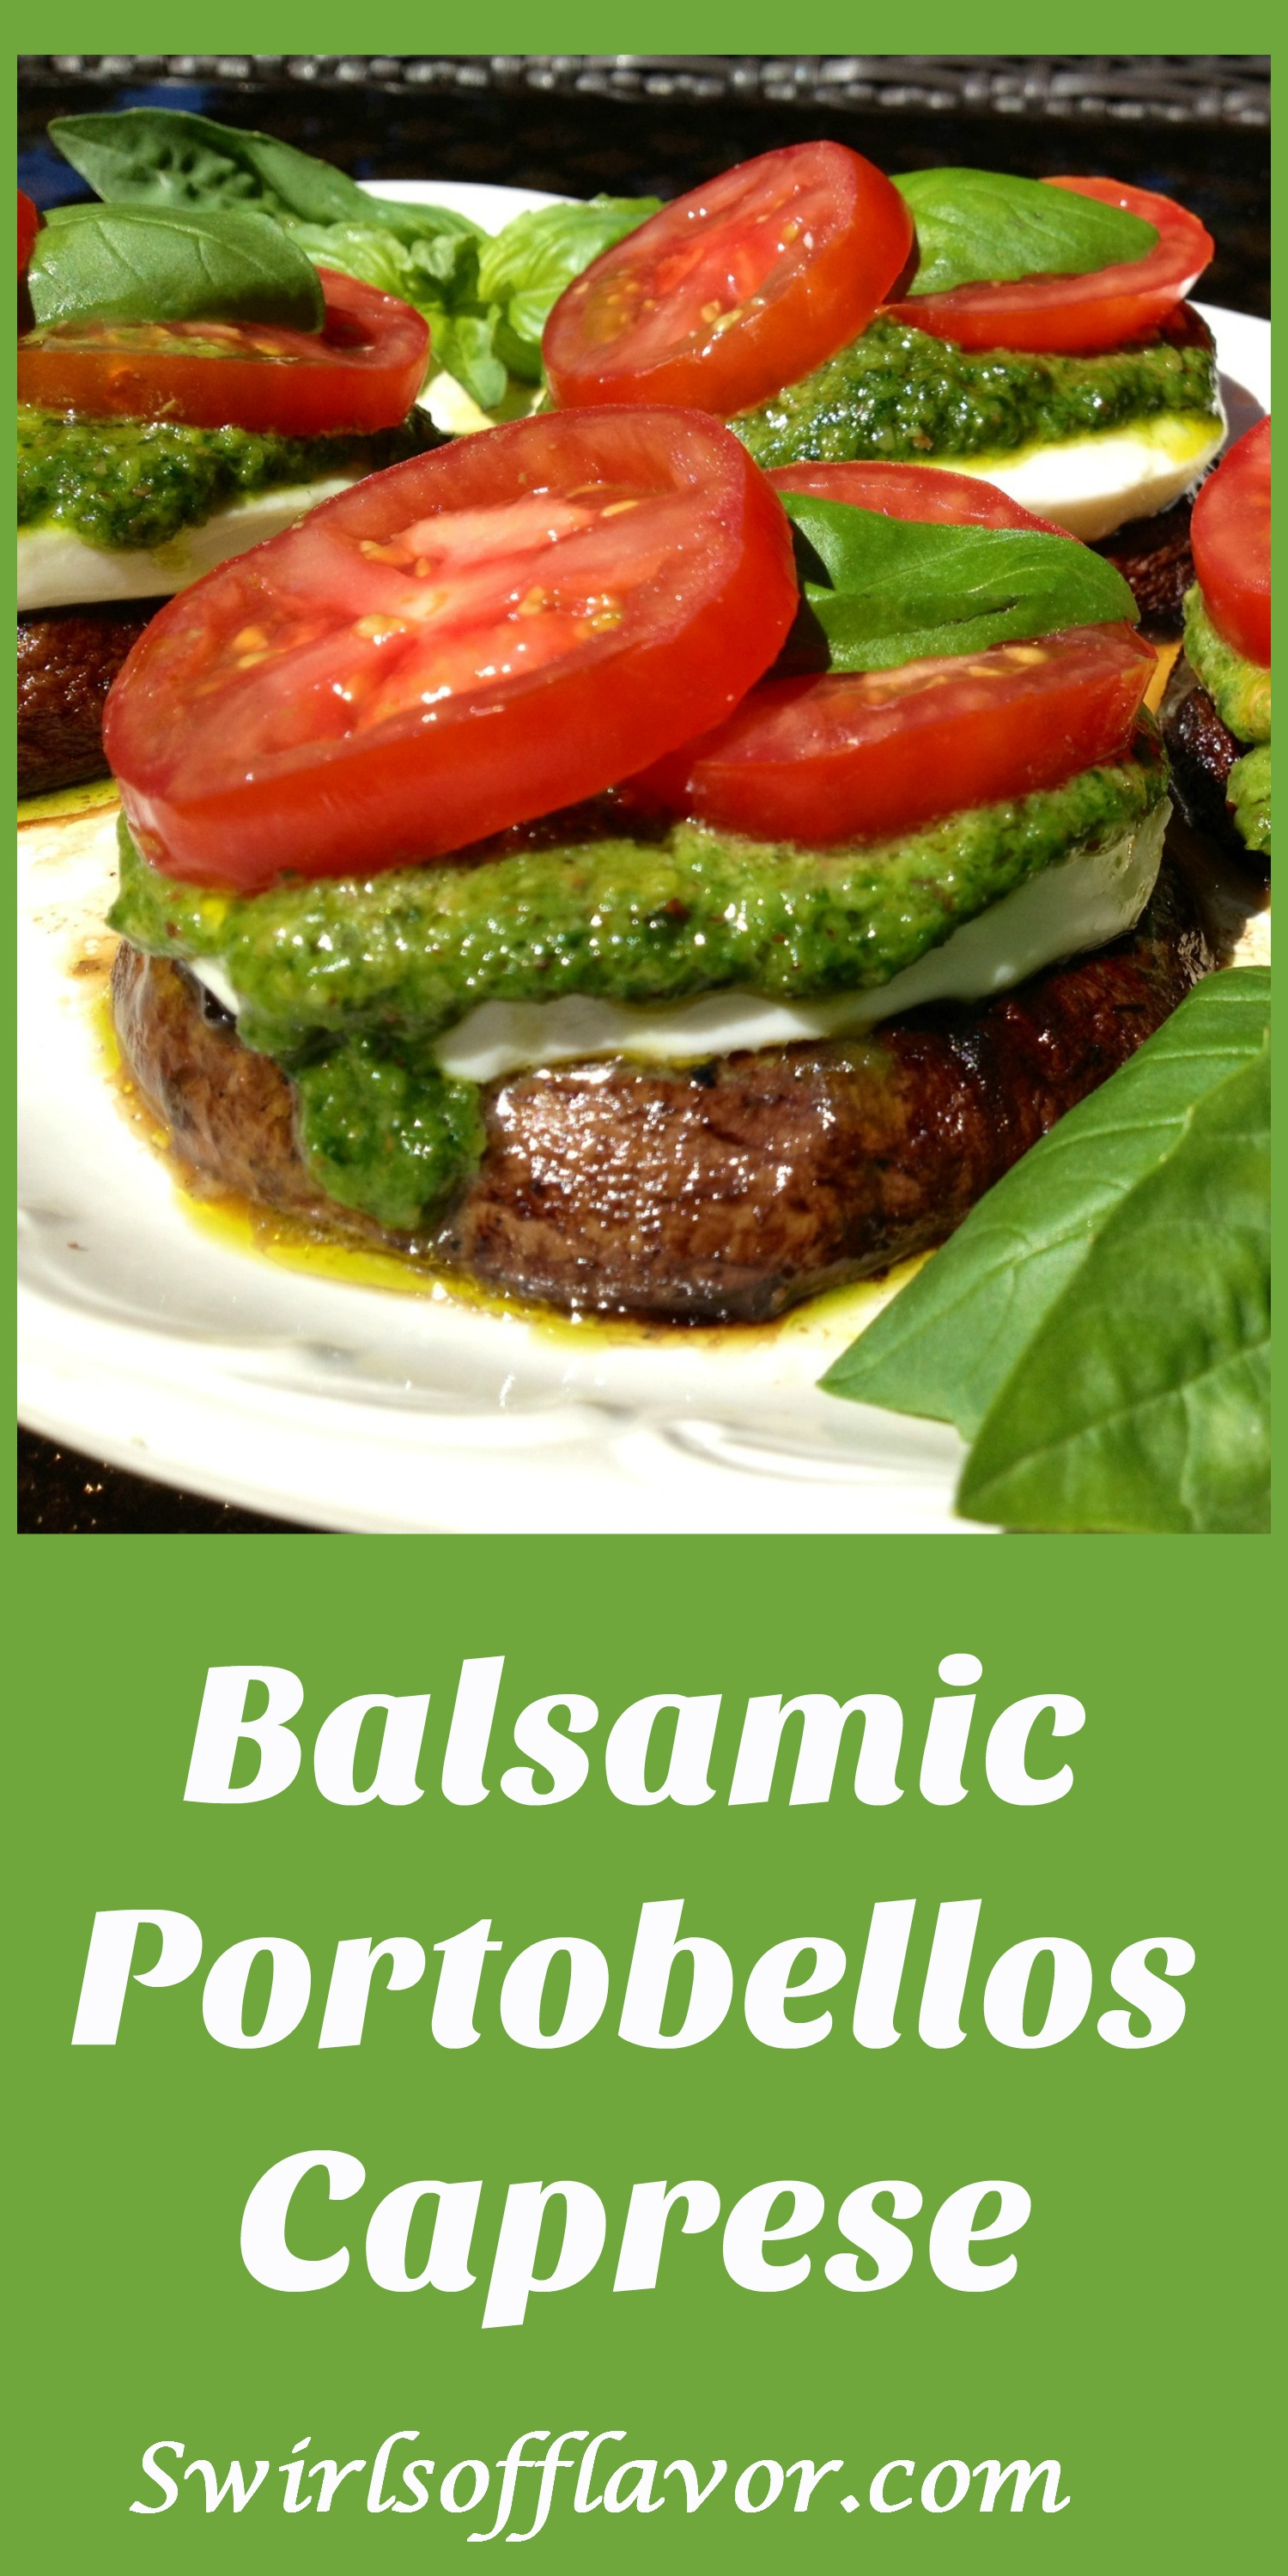 Balsamic Portobellos Caprese in a balsamic marinade are grilled then topped with fresh mozzarella, pesto, compari tomato slices and fresh basil leaves. An easy grilling recipe that's perfect for Meatless Monday in the summer! grilling | mushrooms | vegetarian | Meatless Monday | pesto | hamburger substitute | caprese | easy recipe | farmers market | #swirlsofflavor